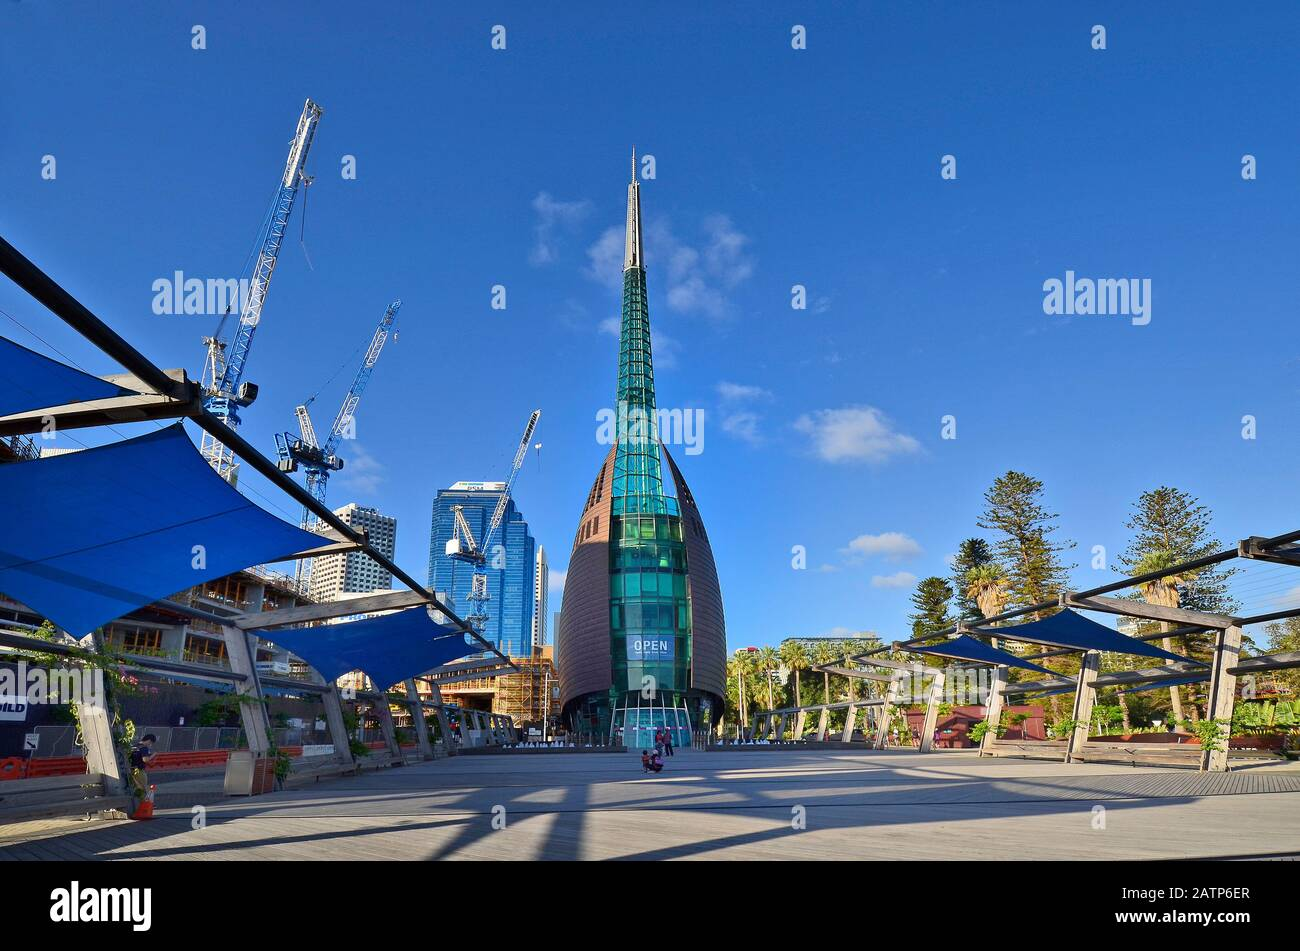 Perth, WA, Australia - November 27, 2017: The Bell Tower, landmark in the capital of Western Australia and construction activity for hotels nearby Stock Photo